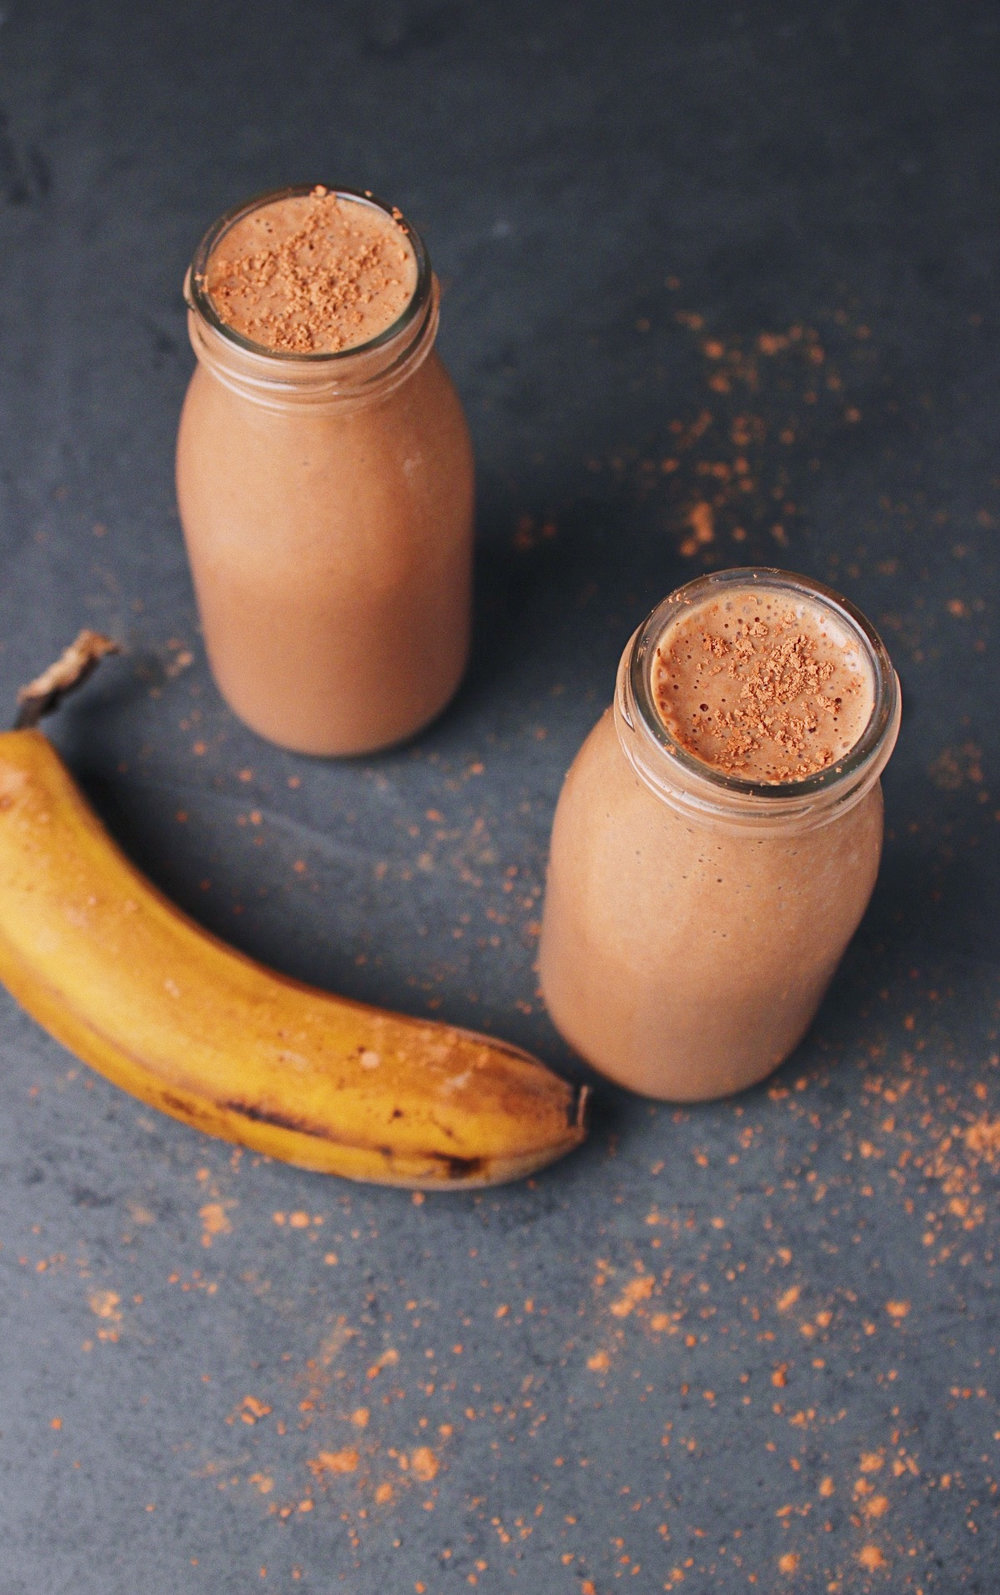 Chocolate Peanut Butter Banana Top